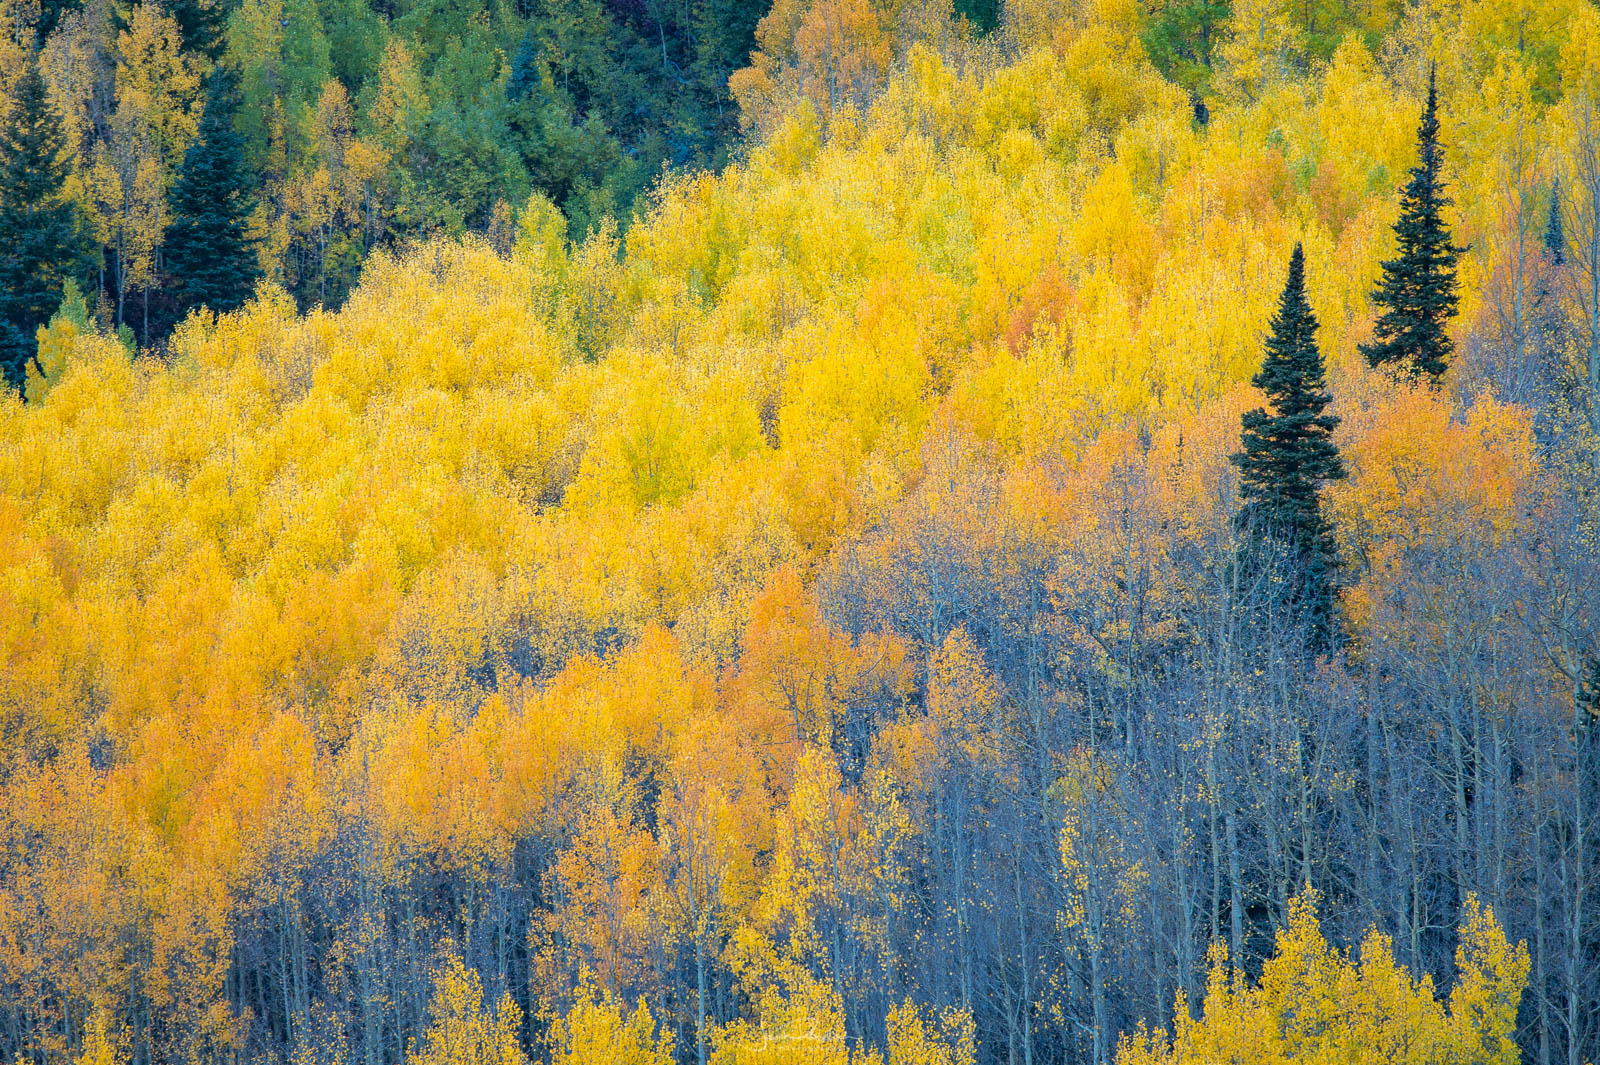 Autumn aspens photographed from the Million Dollar Highway.